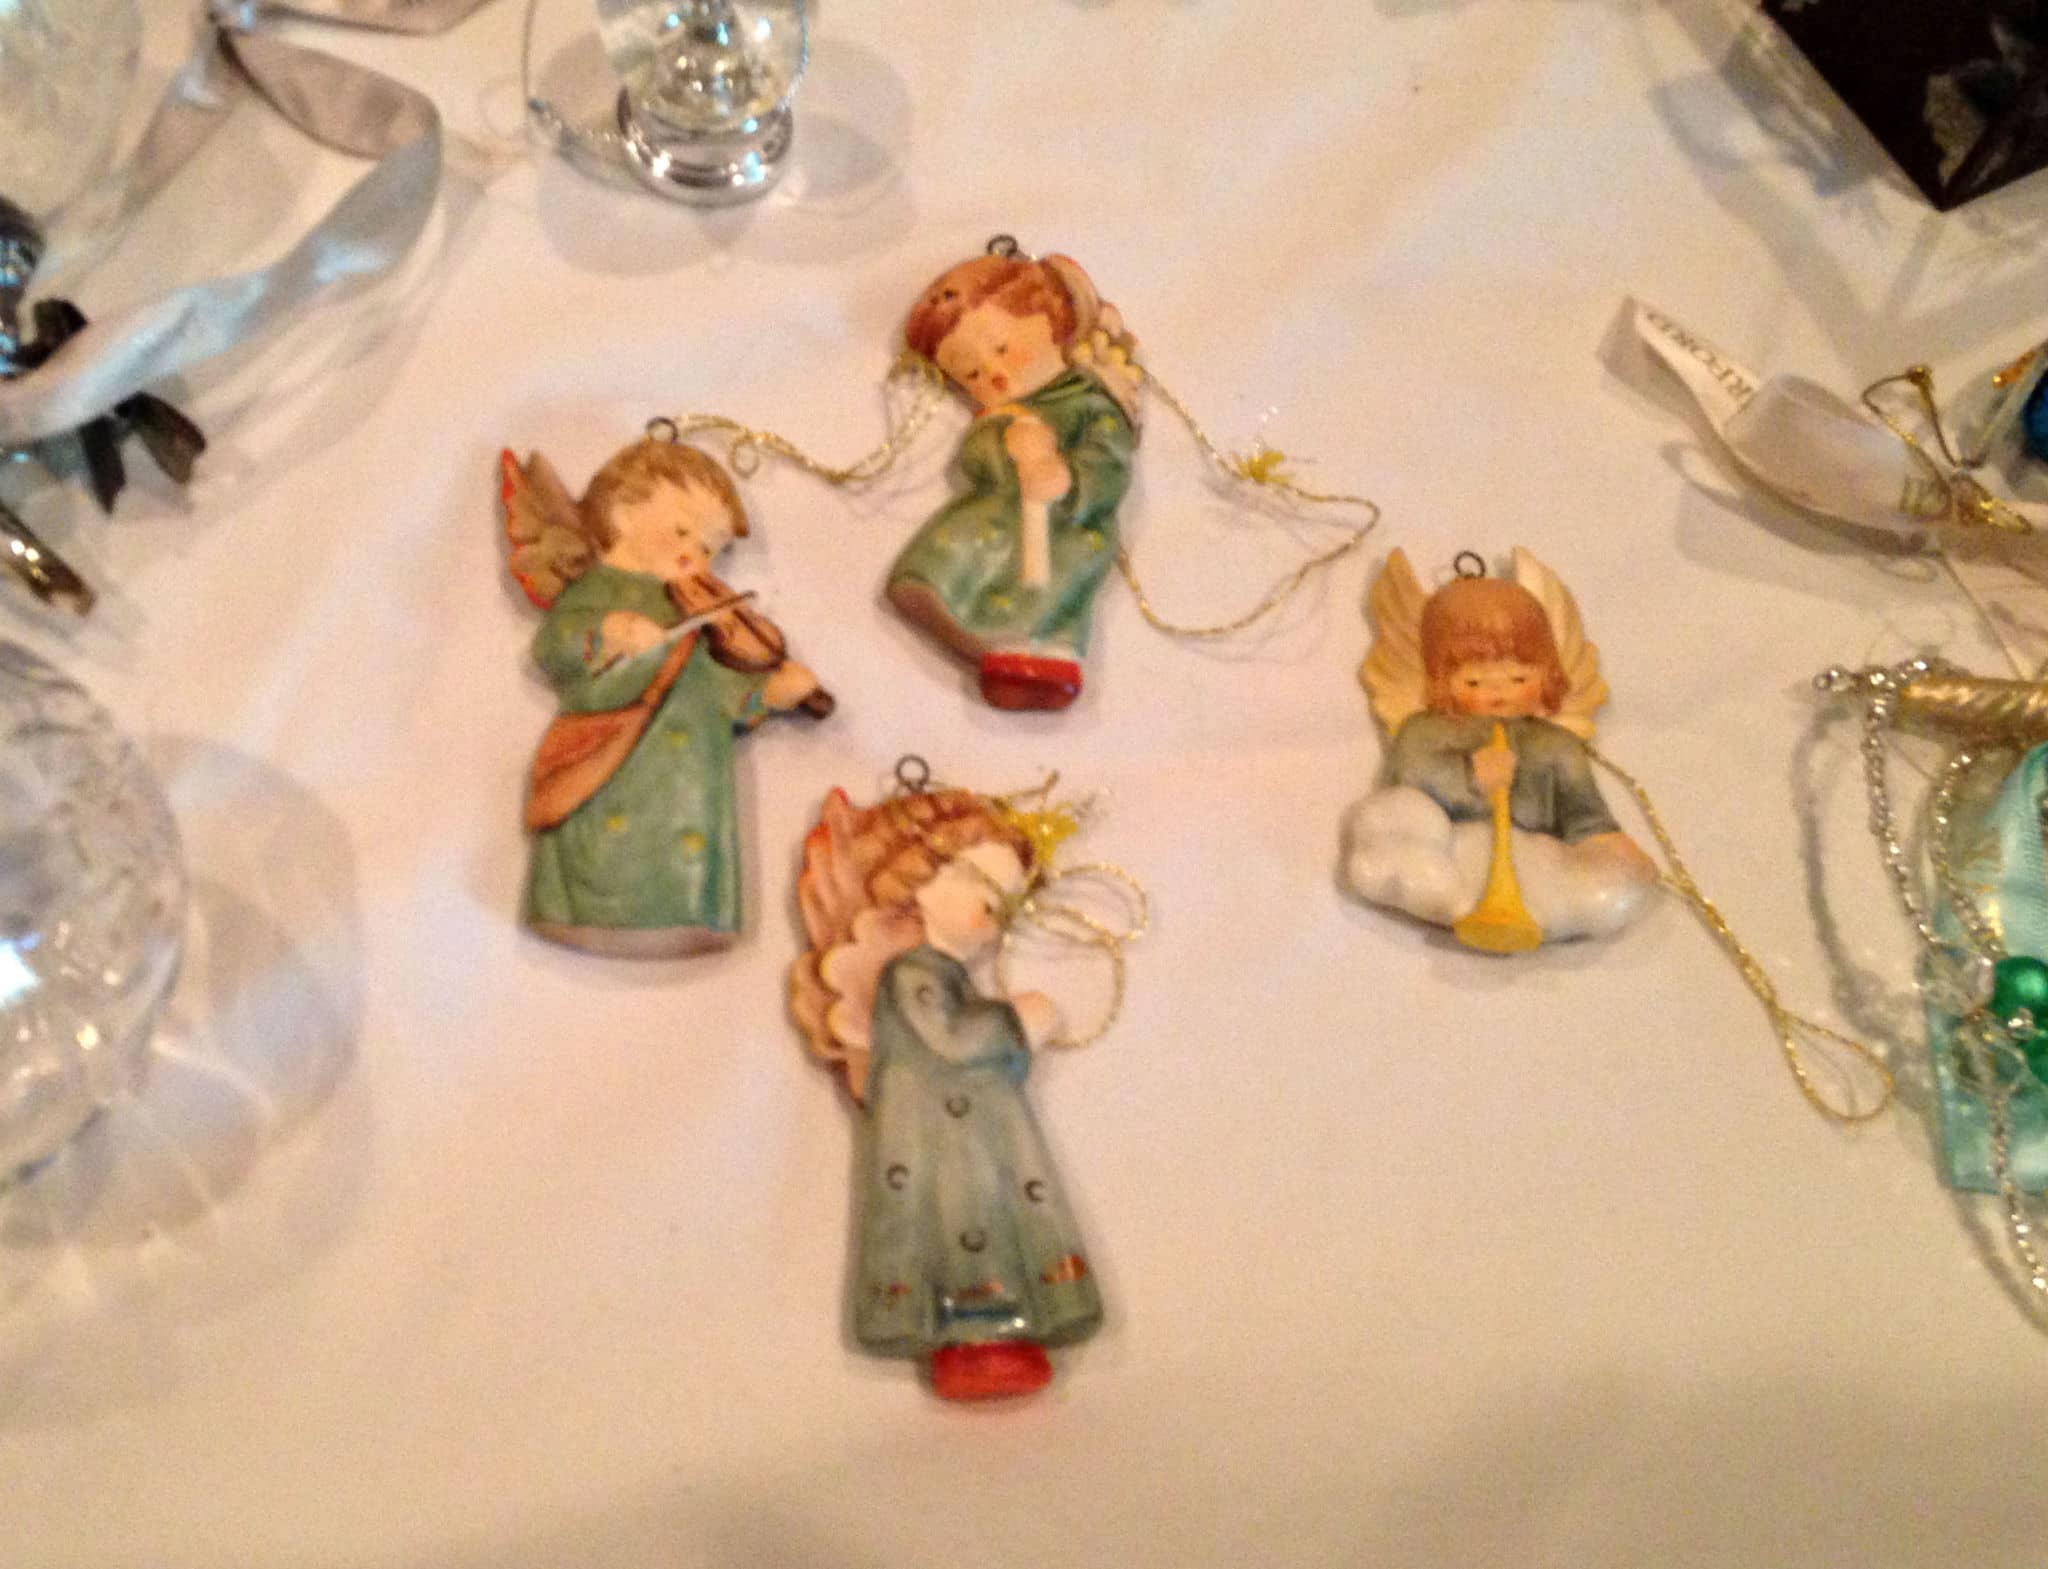 Hummel christmas tree ornaments - These Beautiful Hummel Angels Were Given To Me By My Biological Mother